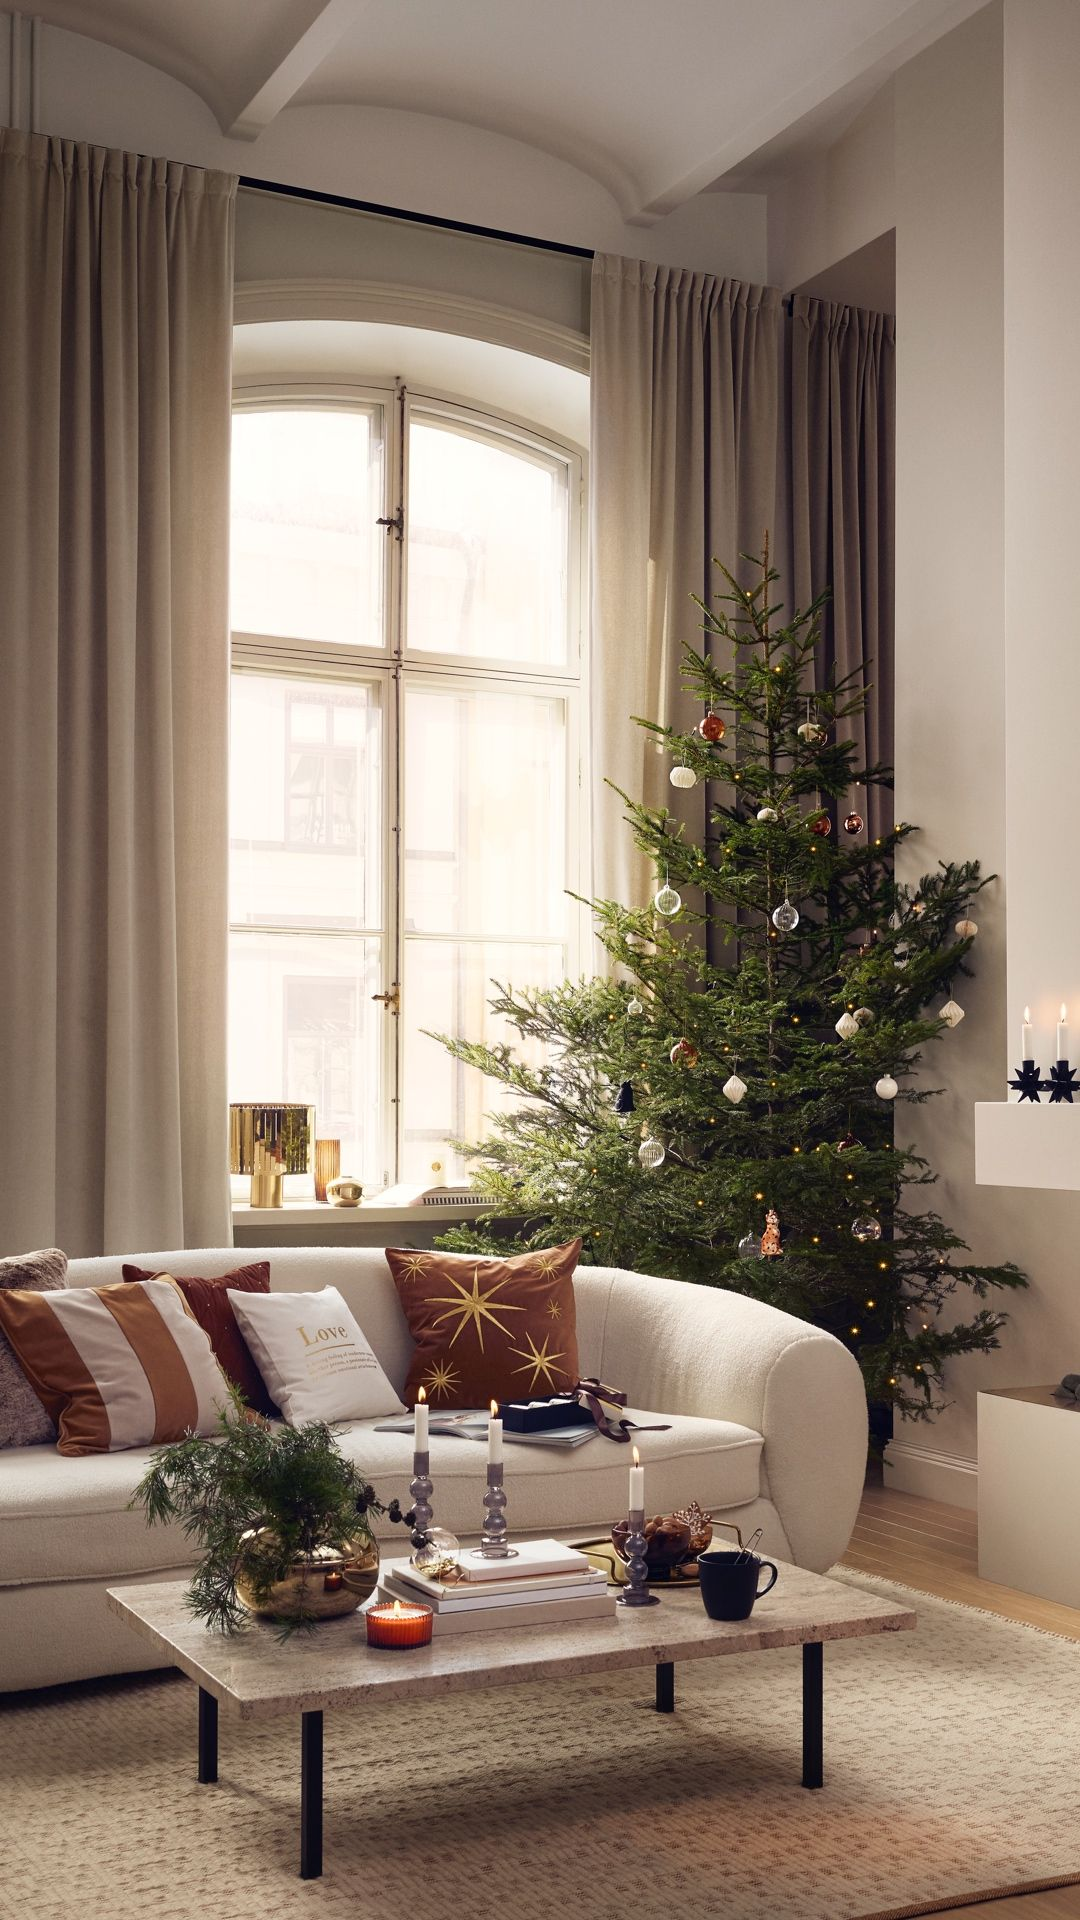 H M Home Get Your Home Ready For Holiday Festivities And Family Gatherings With Christmas Living Rooms Christmas Decorations Living Room Holiday Decor Trends